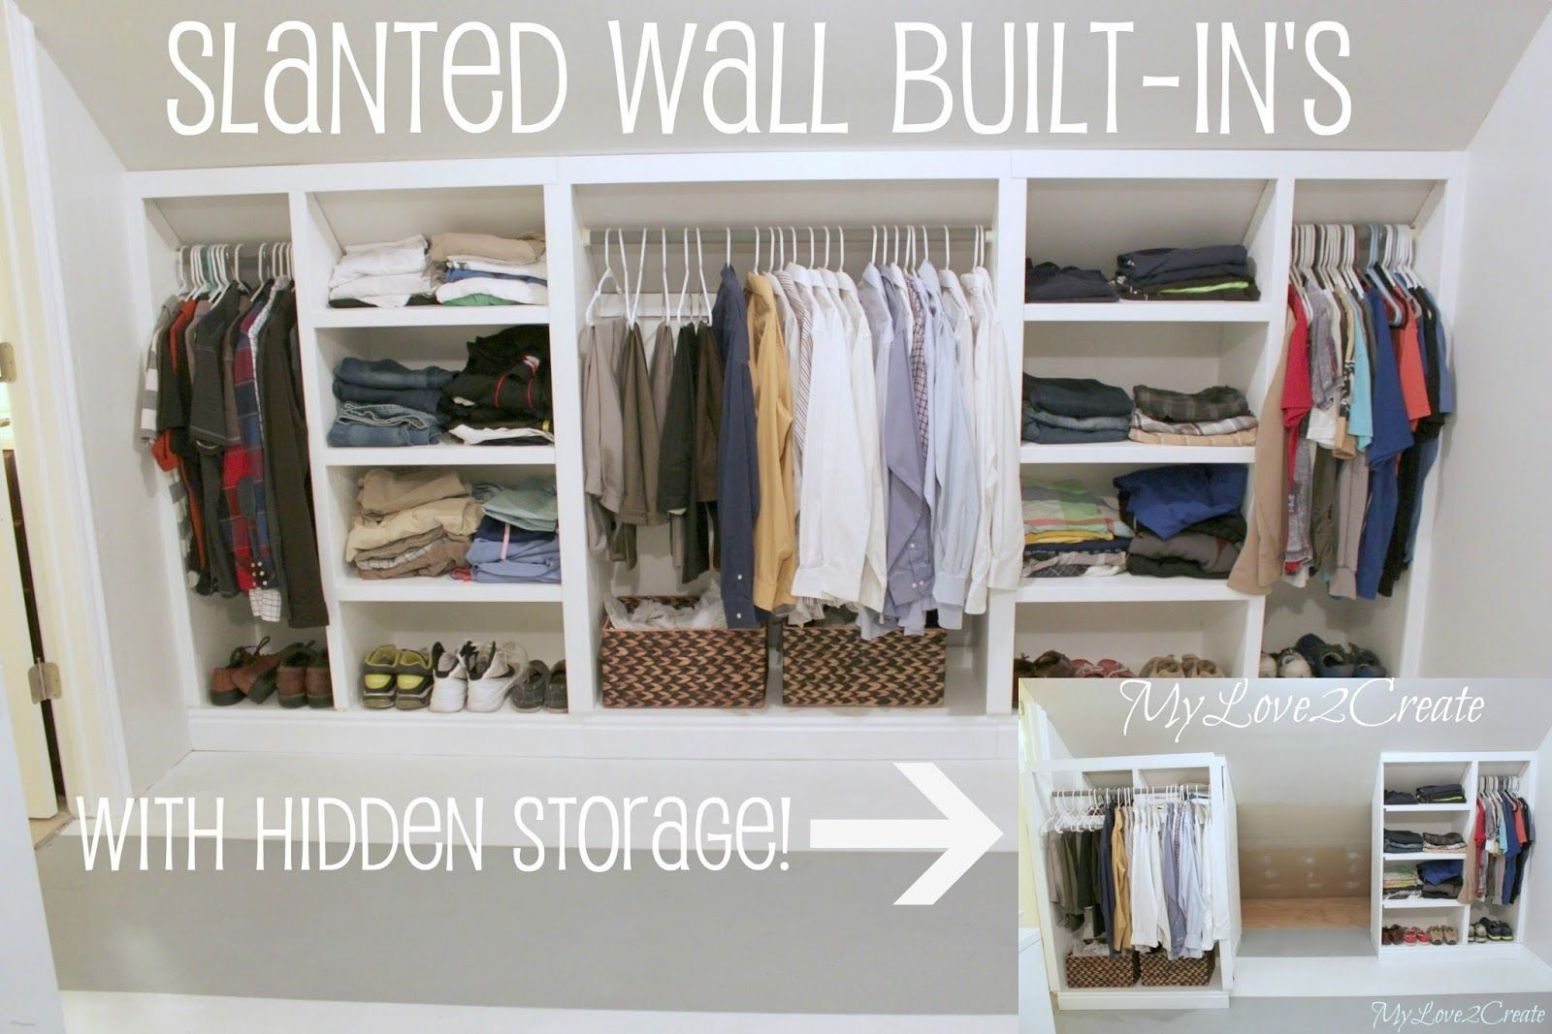 Slanted Wall Built-in's With Hidden Storage (With images ...